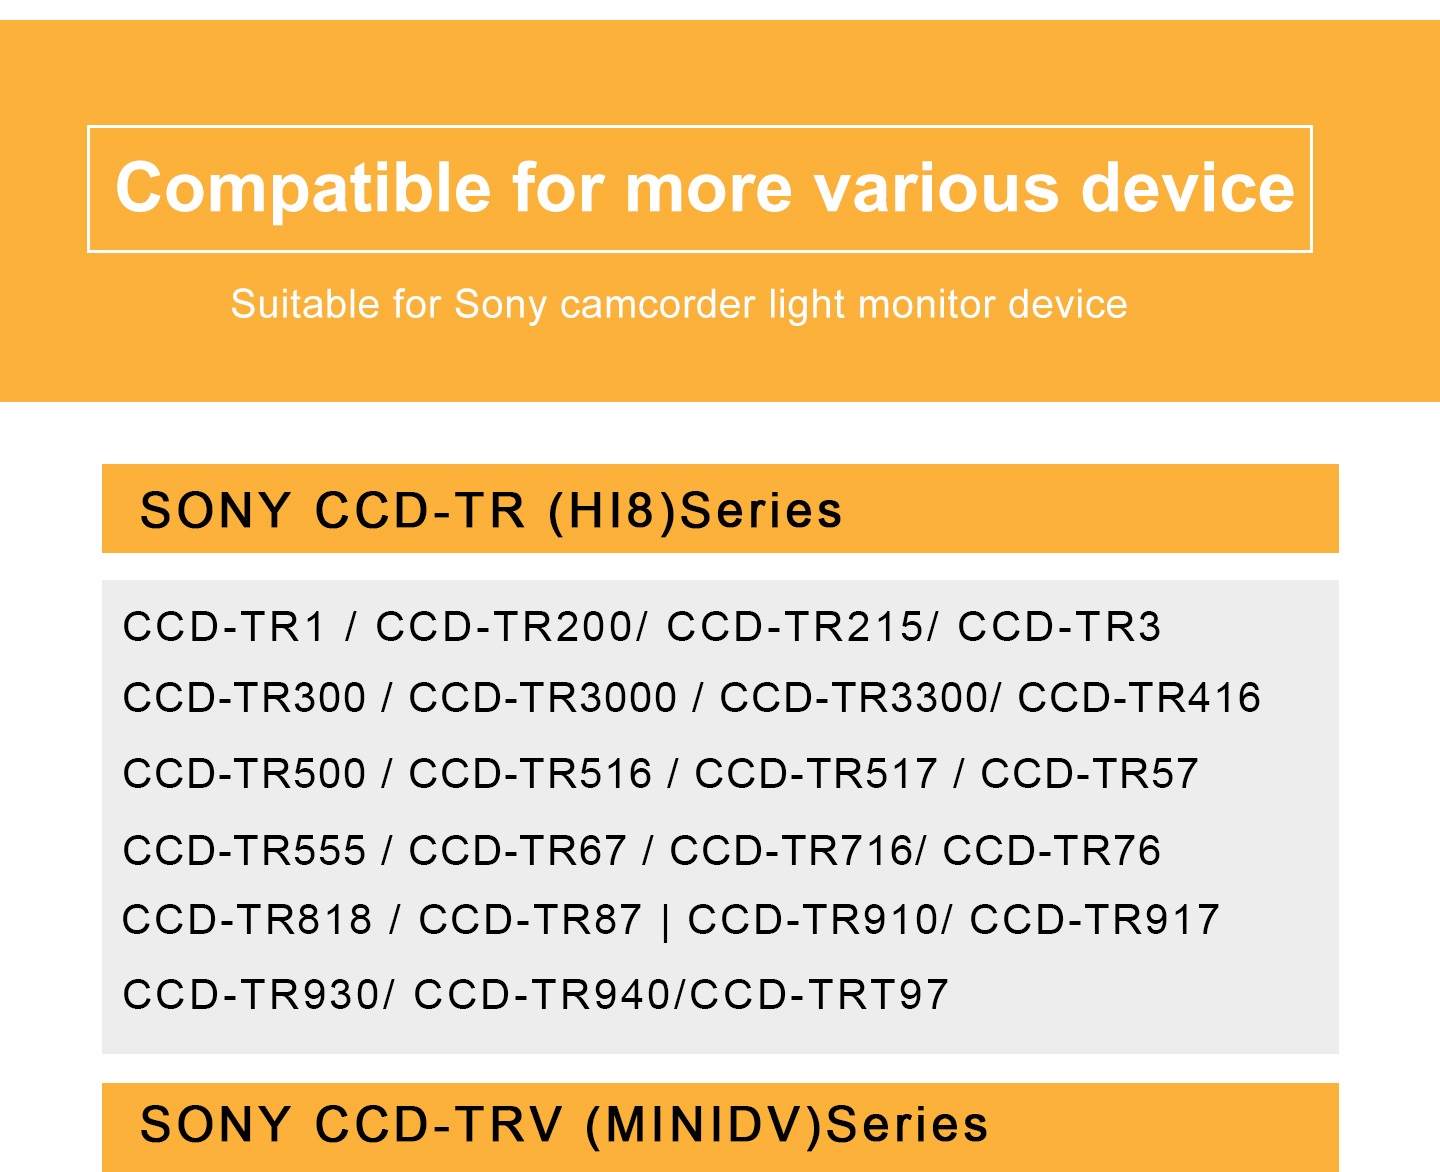 Compatible for more various device